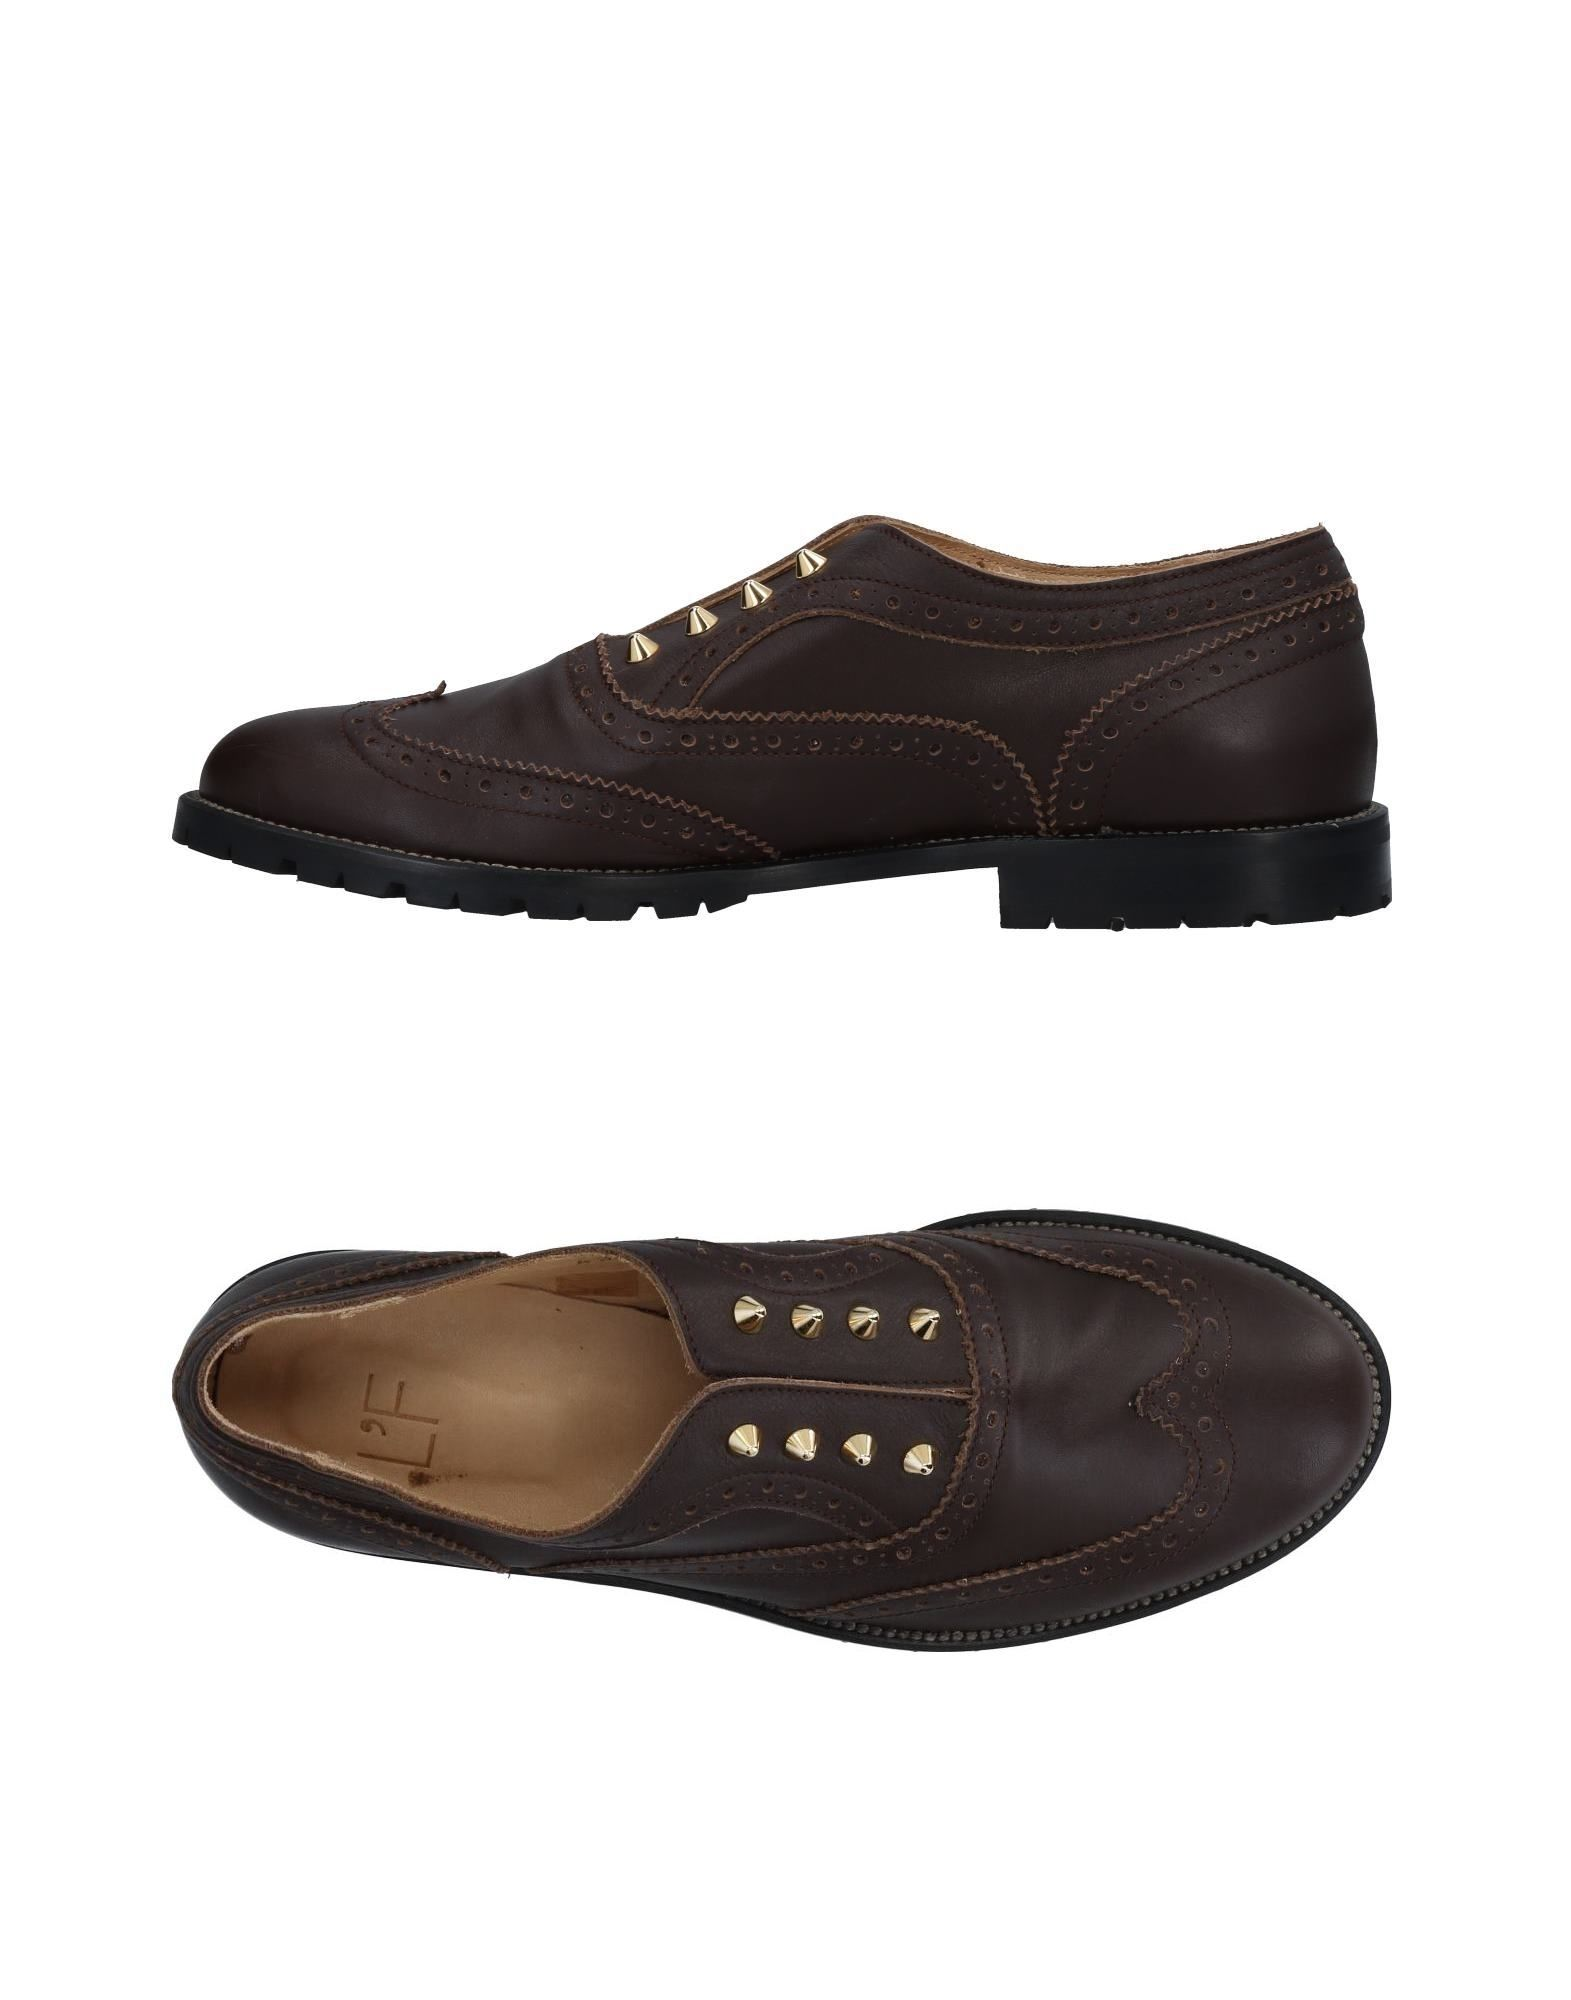 L'f Shoes Loafers - Men L'f Shoes Loafers online on 11480746XM  United Kingdom - 11480746XM on 710187